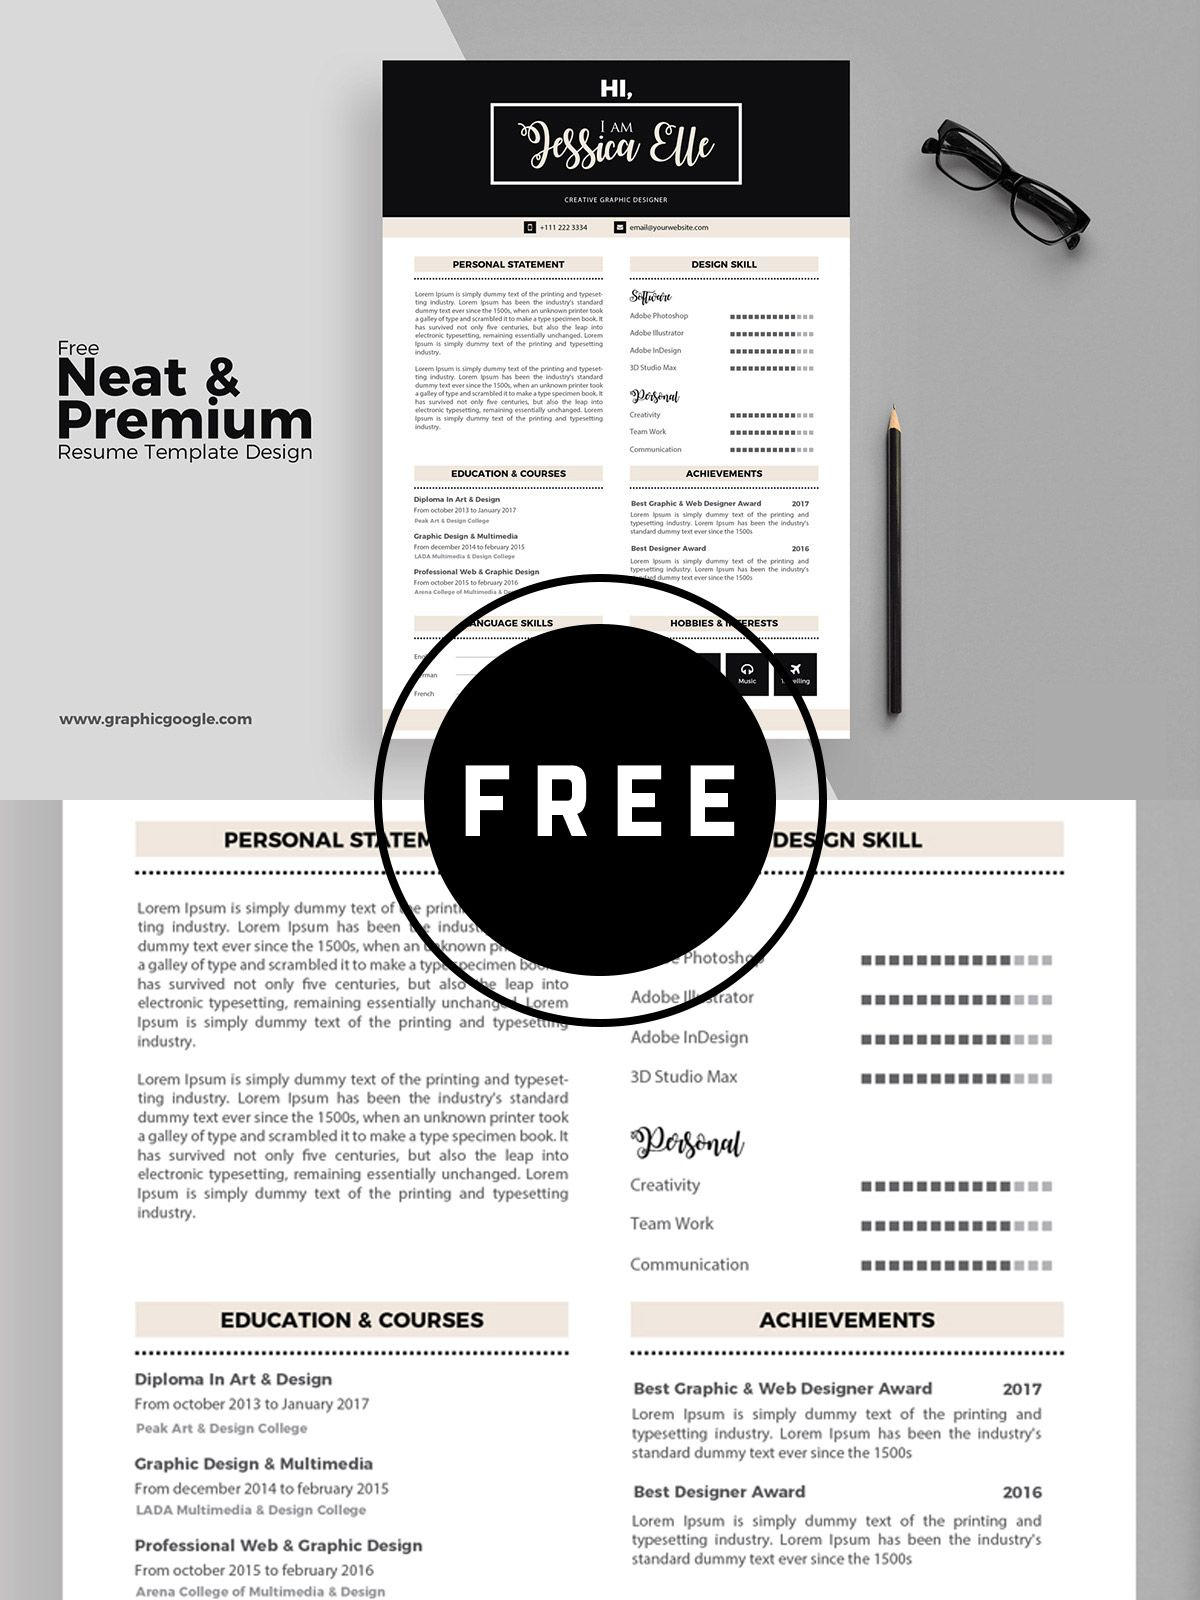 98 awesome free resume templates in this post are made by